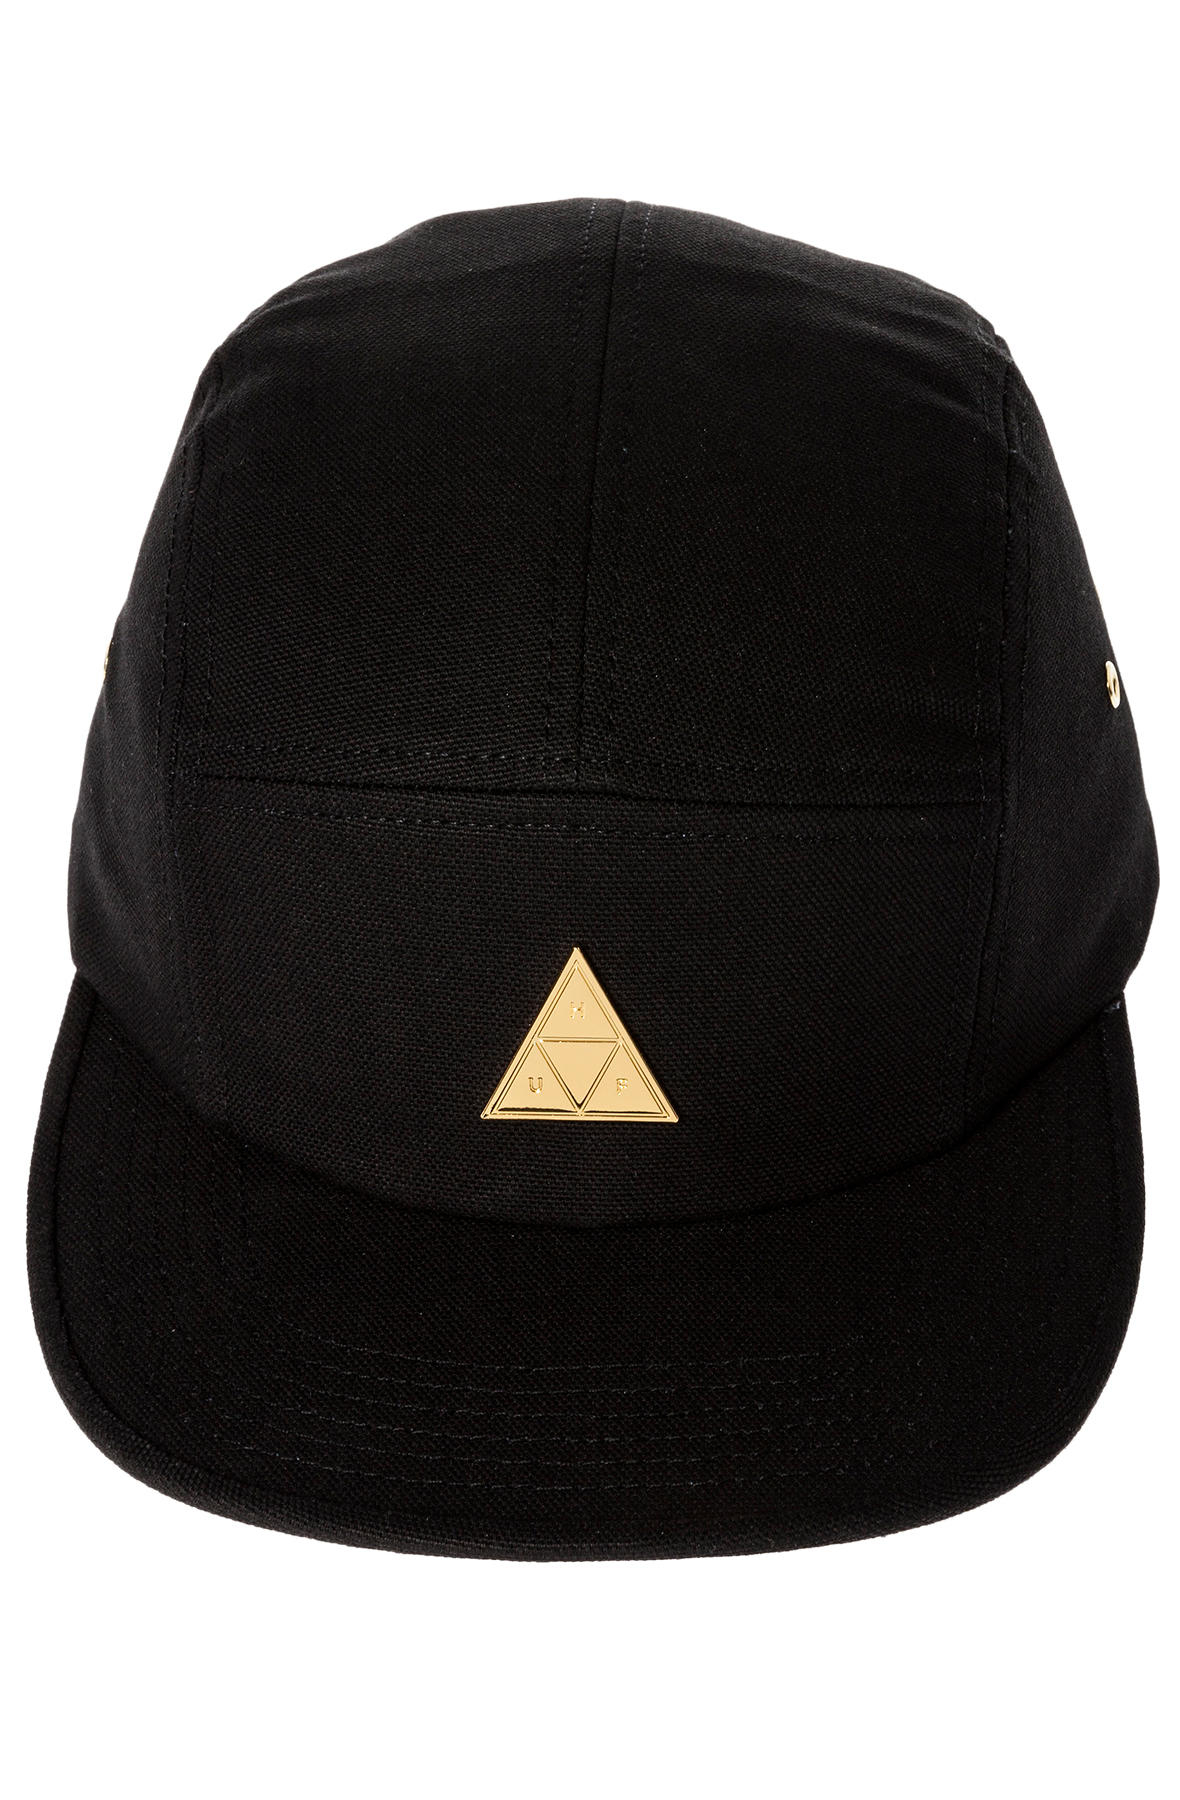 520f3926d69 Lyst - Huf The Metal Triple Triangle 5 Panel in Black for Men